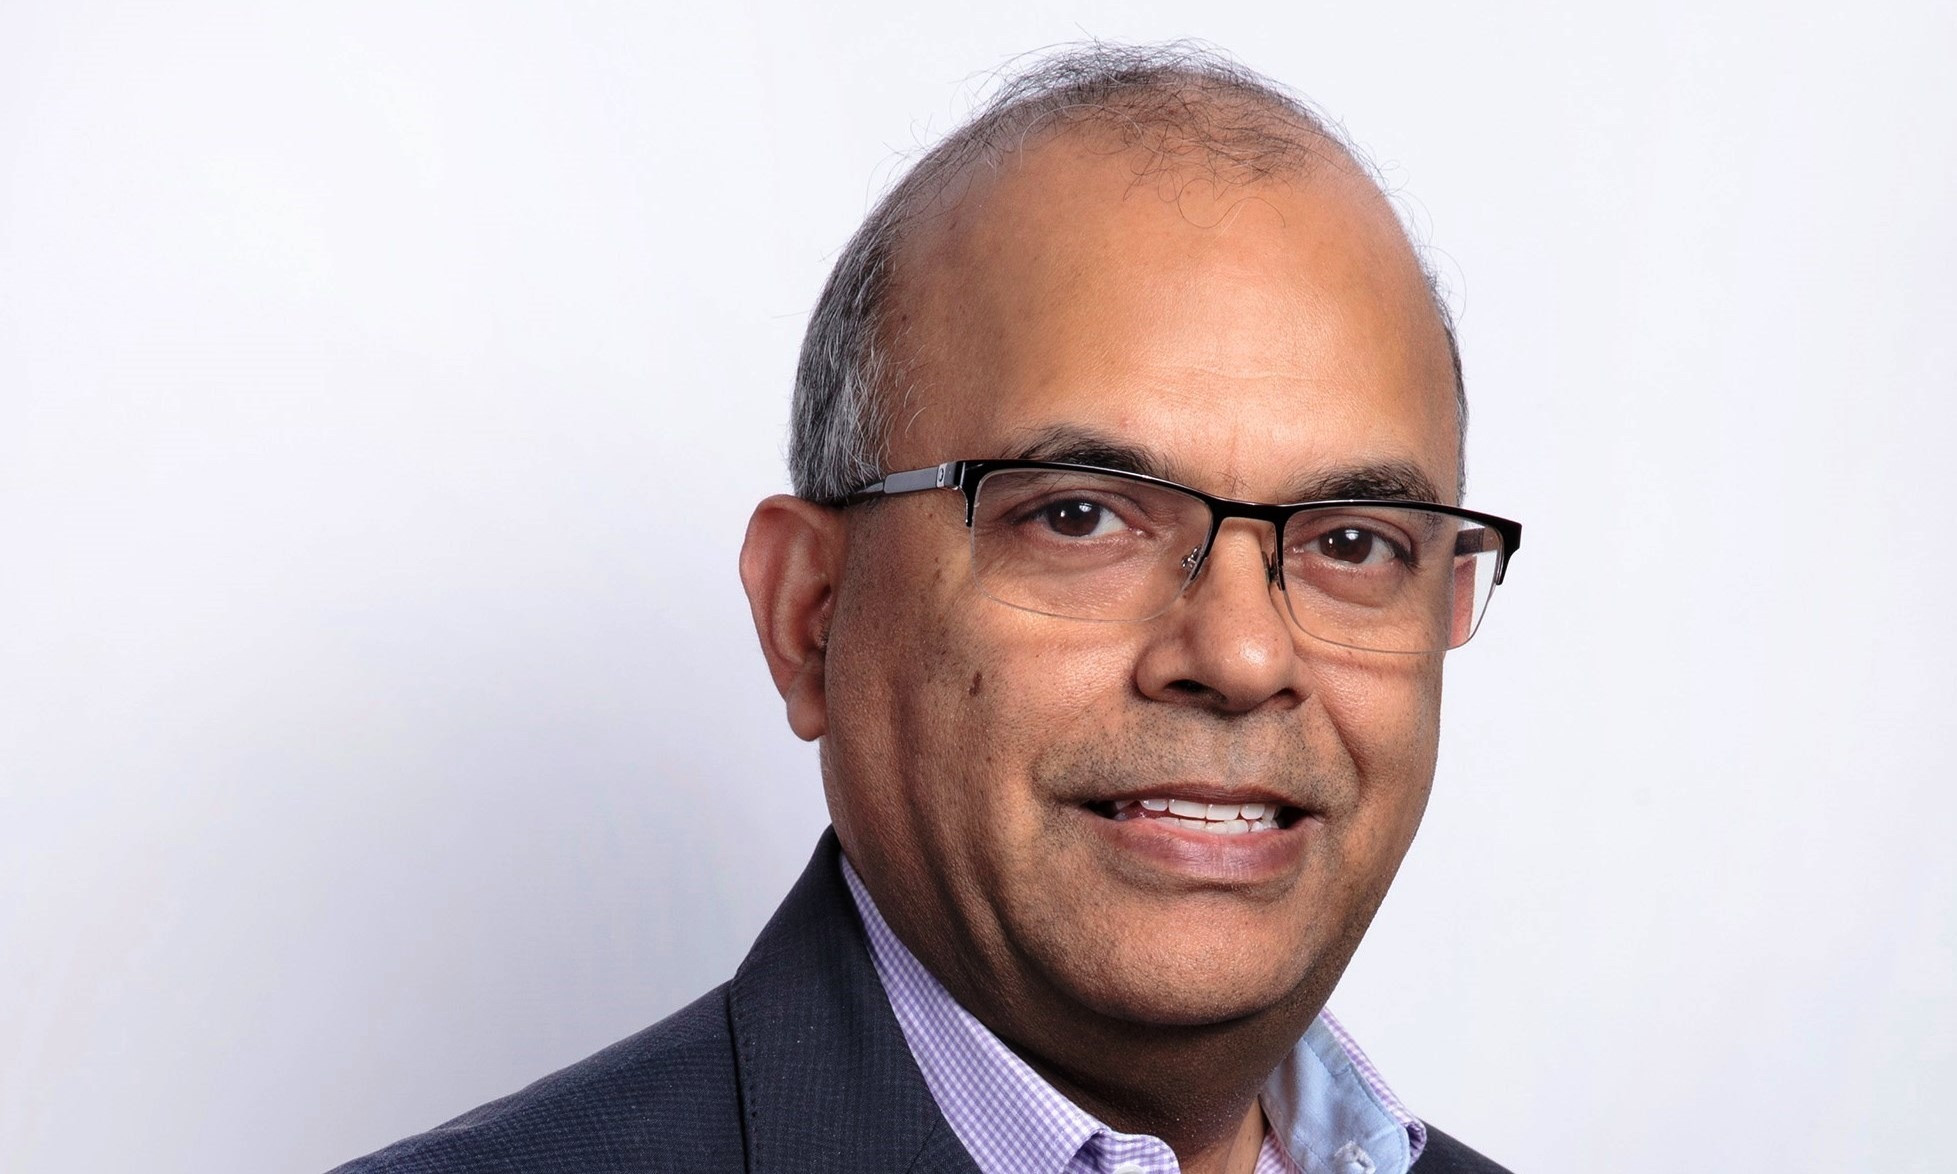 Avasant's Anupam Govil Provides Critical Insight & Guidance For Both BPOs and Their Clients In The Face Of The Coronavirus COVID-19 Pandemic